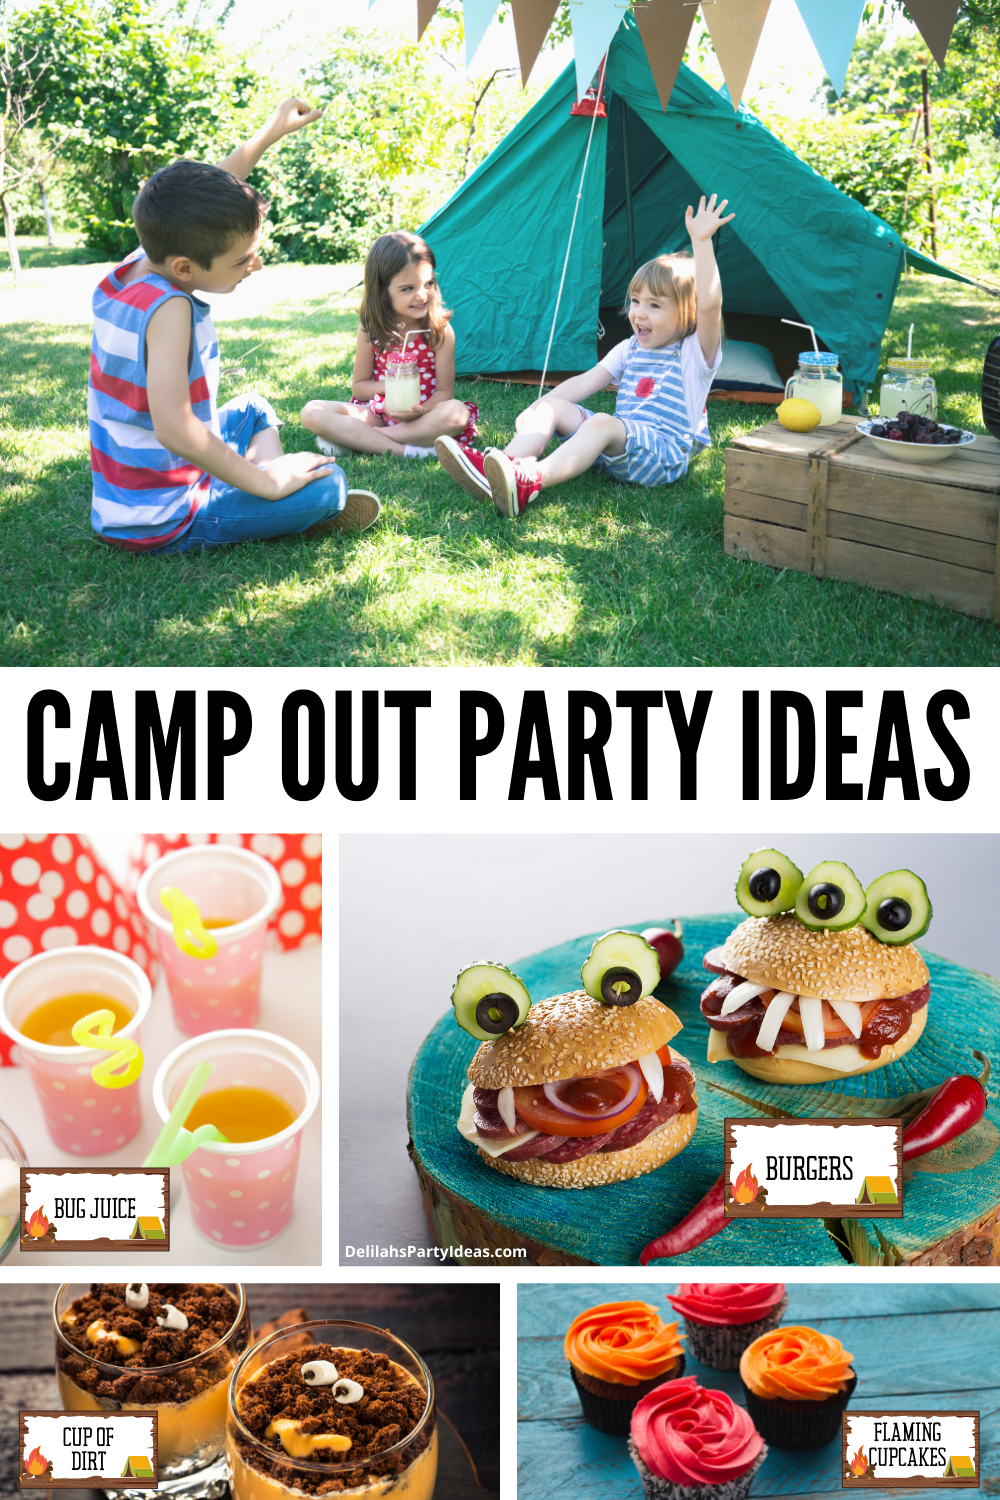 Camp Out Party Ideas